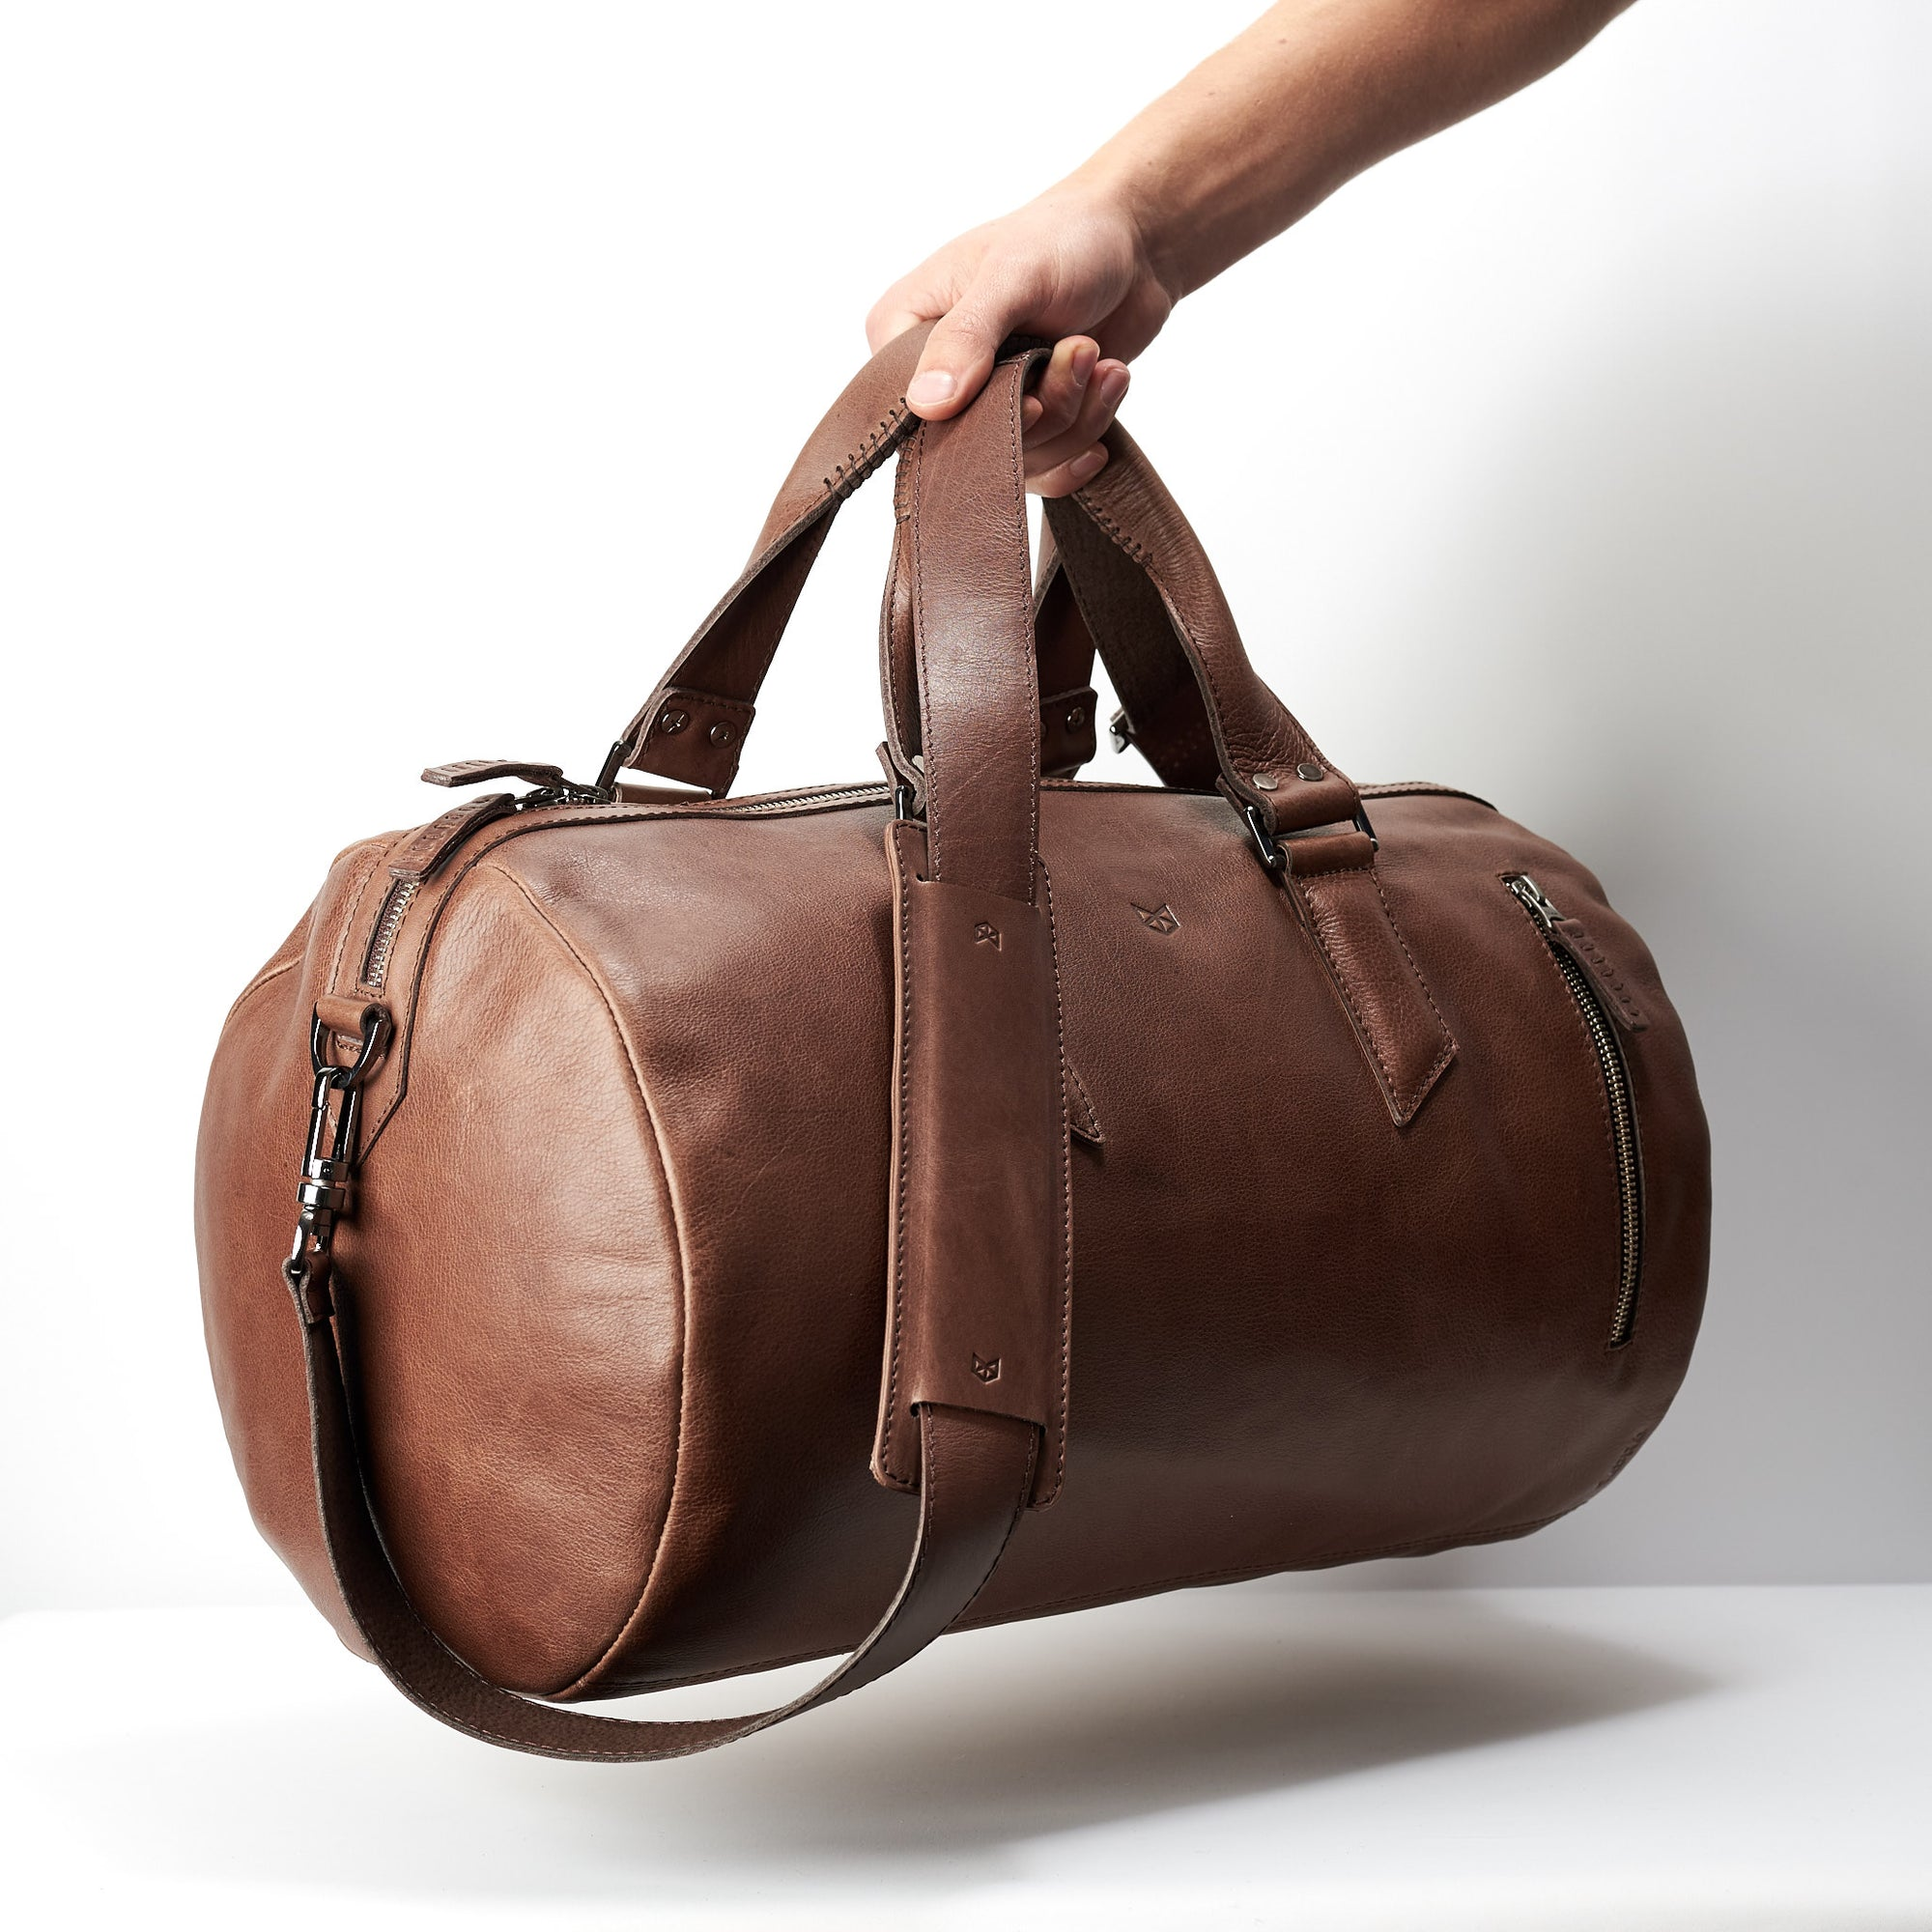 Handmade Substantial Leather Duffle Bag · Brown by Capra - Capra Leather